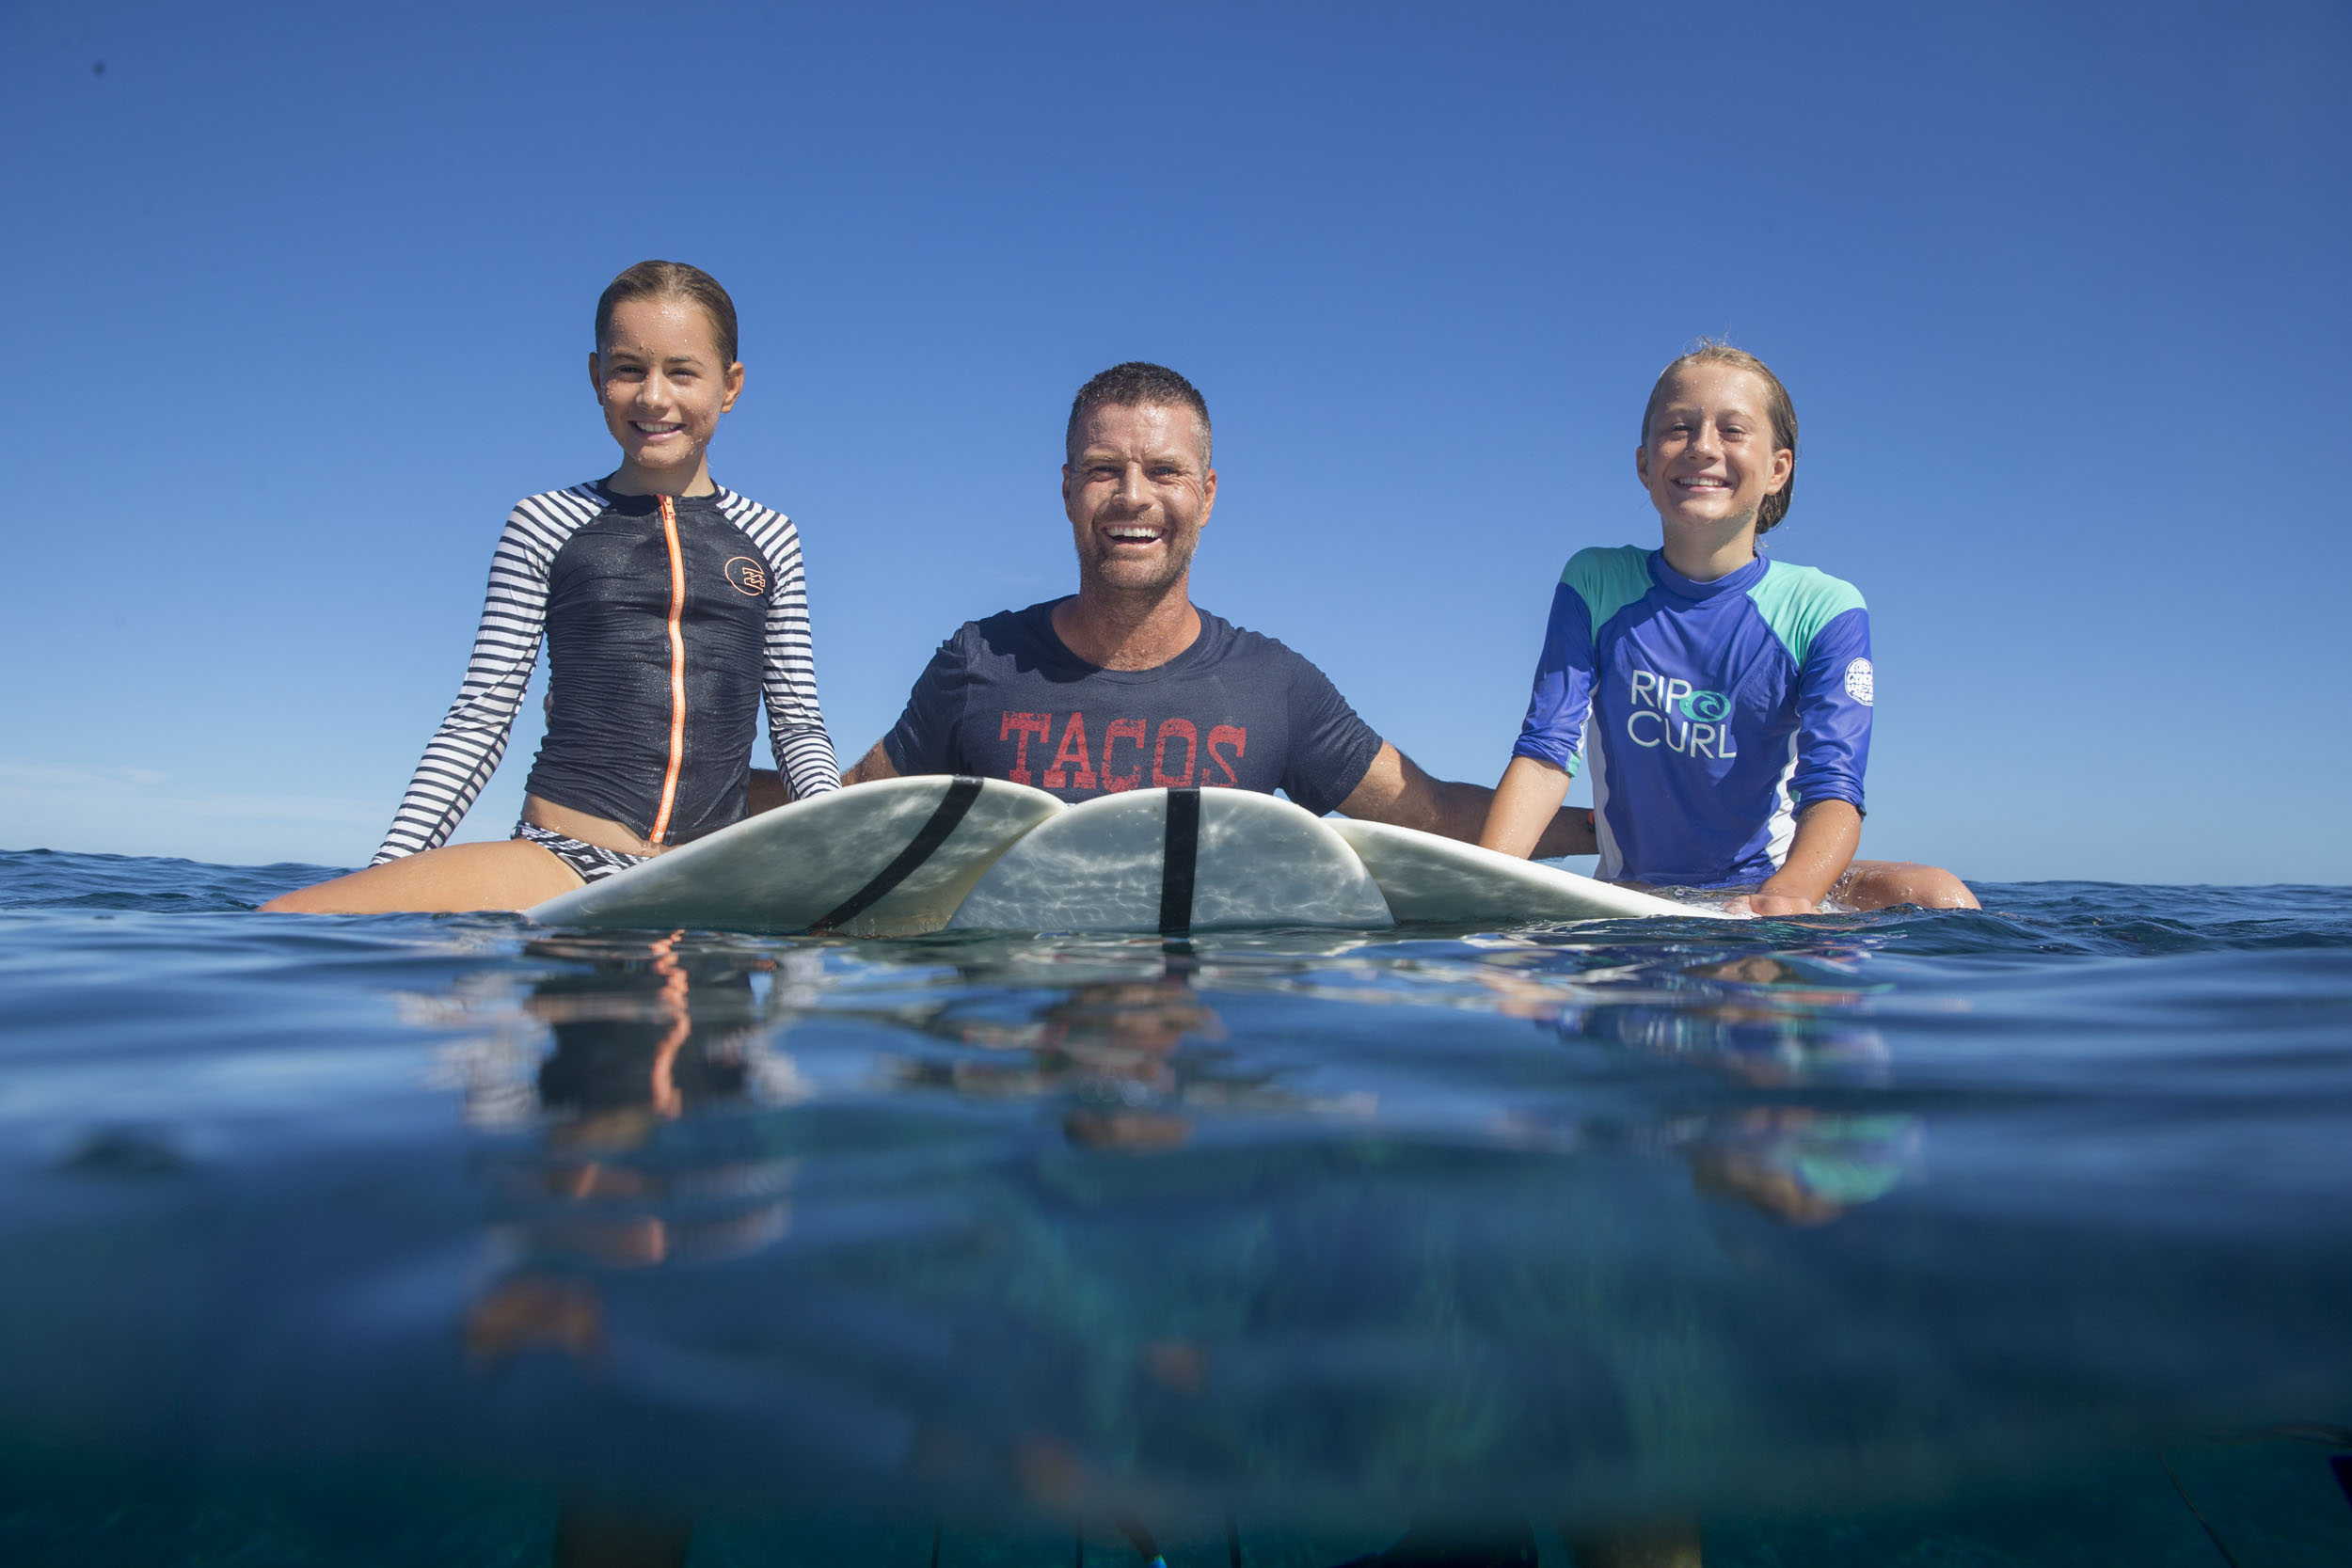 Pete Evans and his amazing groms!